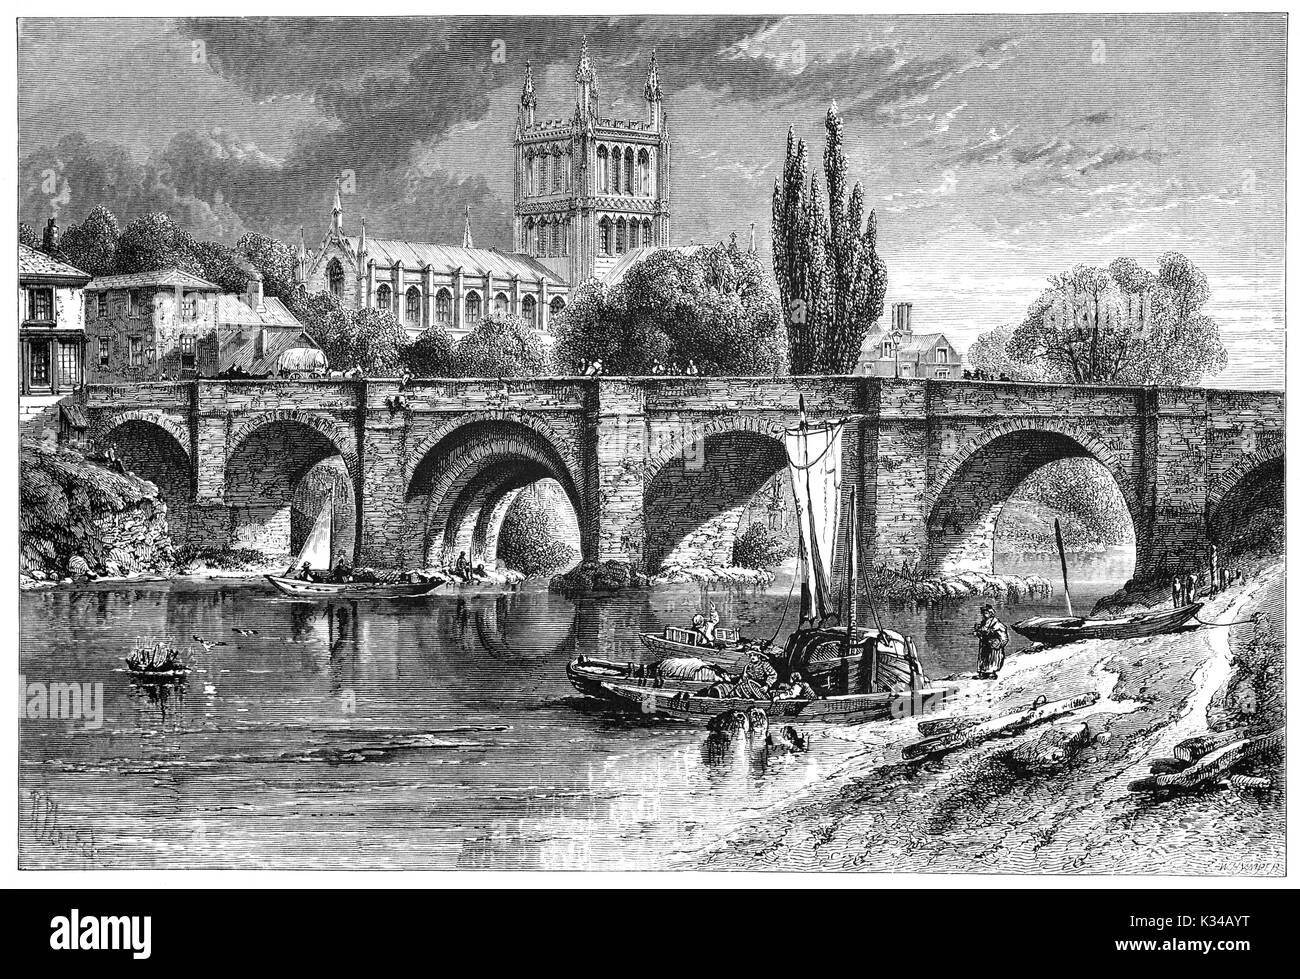 1870: River activities on the River Wye below the Wye Bridge with Hereford Cathedral beyond. It dates from 1079 and its most famous treasure is Mappa Mundi, a mediaeval map of the world dating from the 13th century. Herefordshire, England. - Stock Image